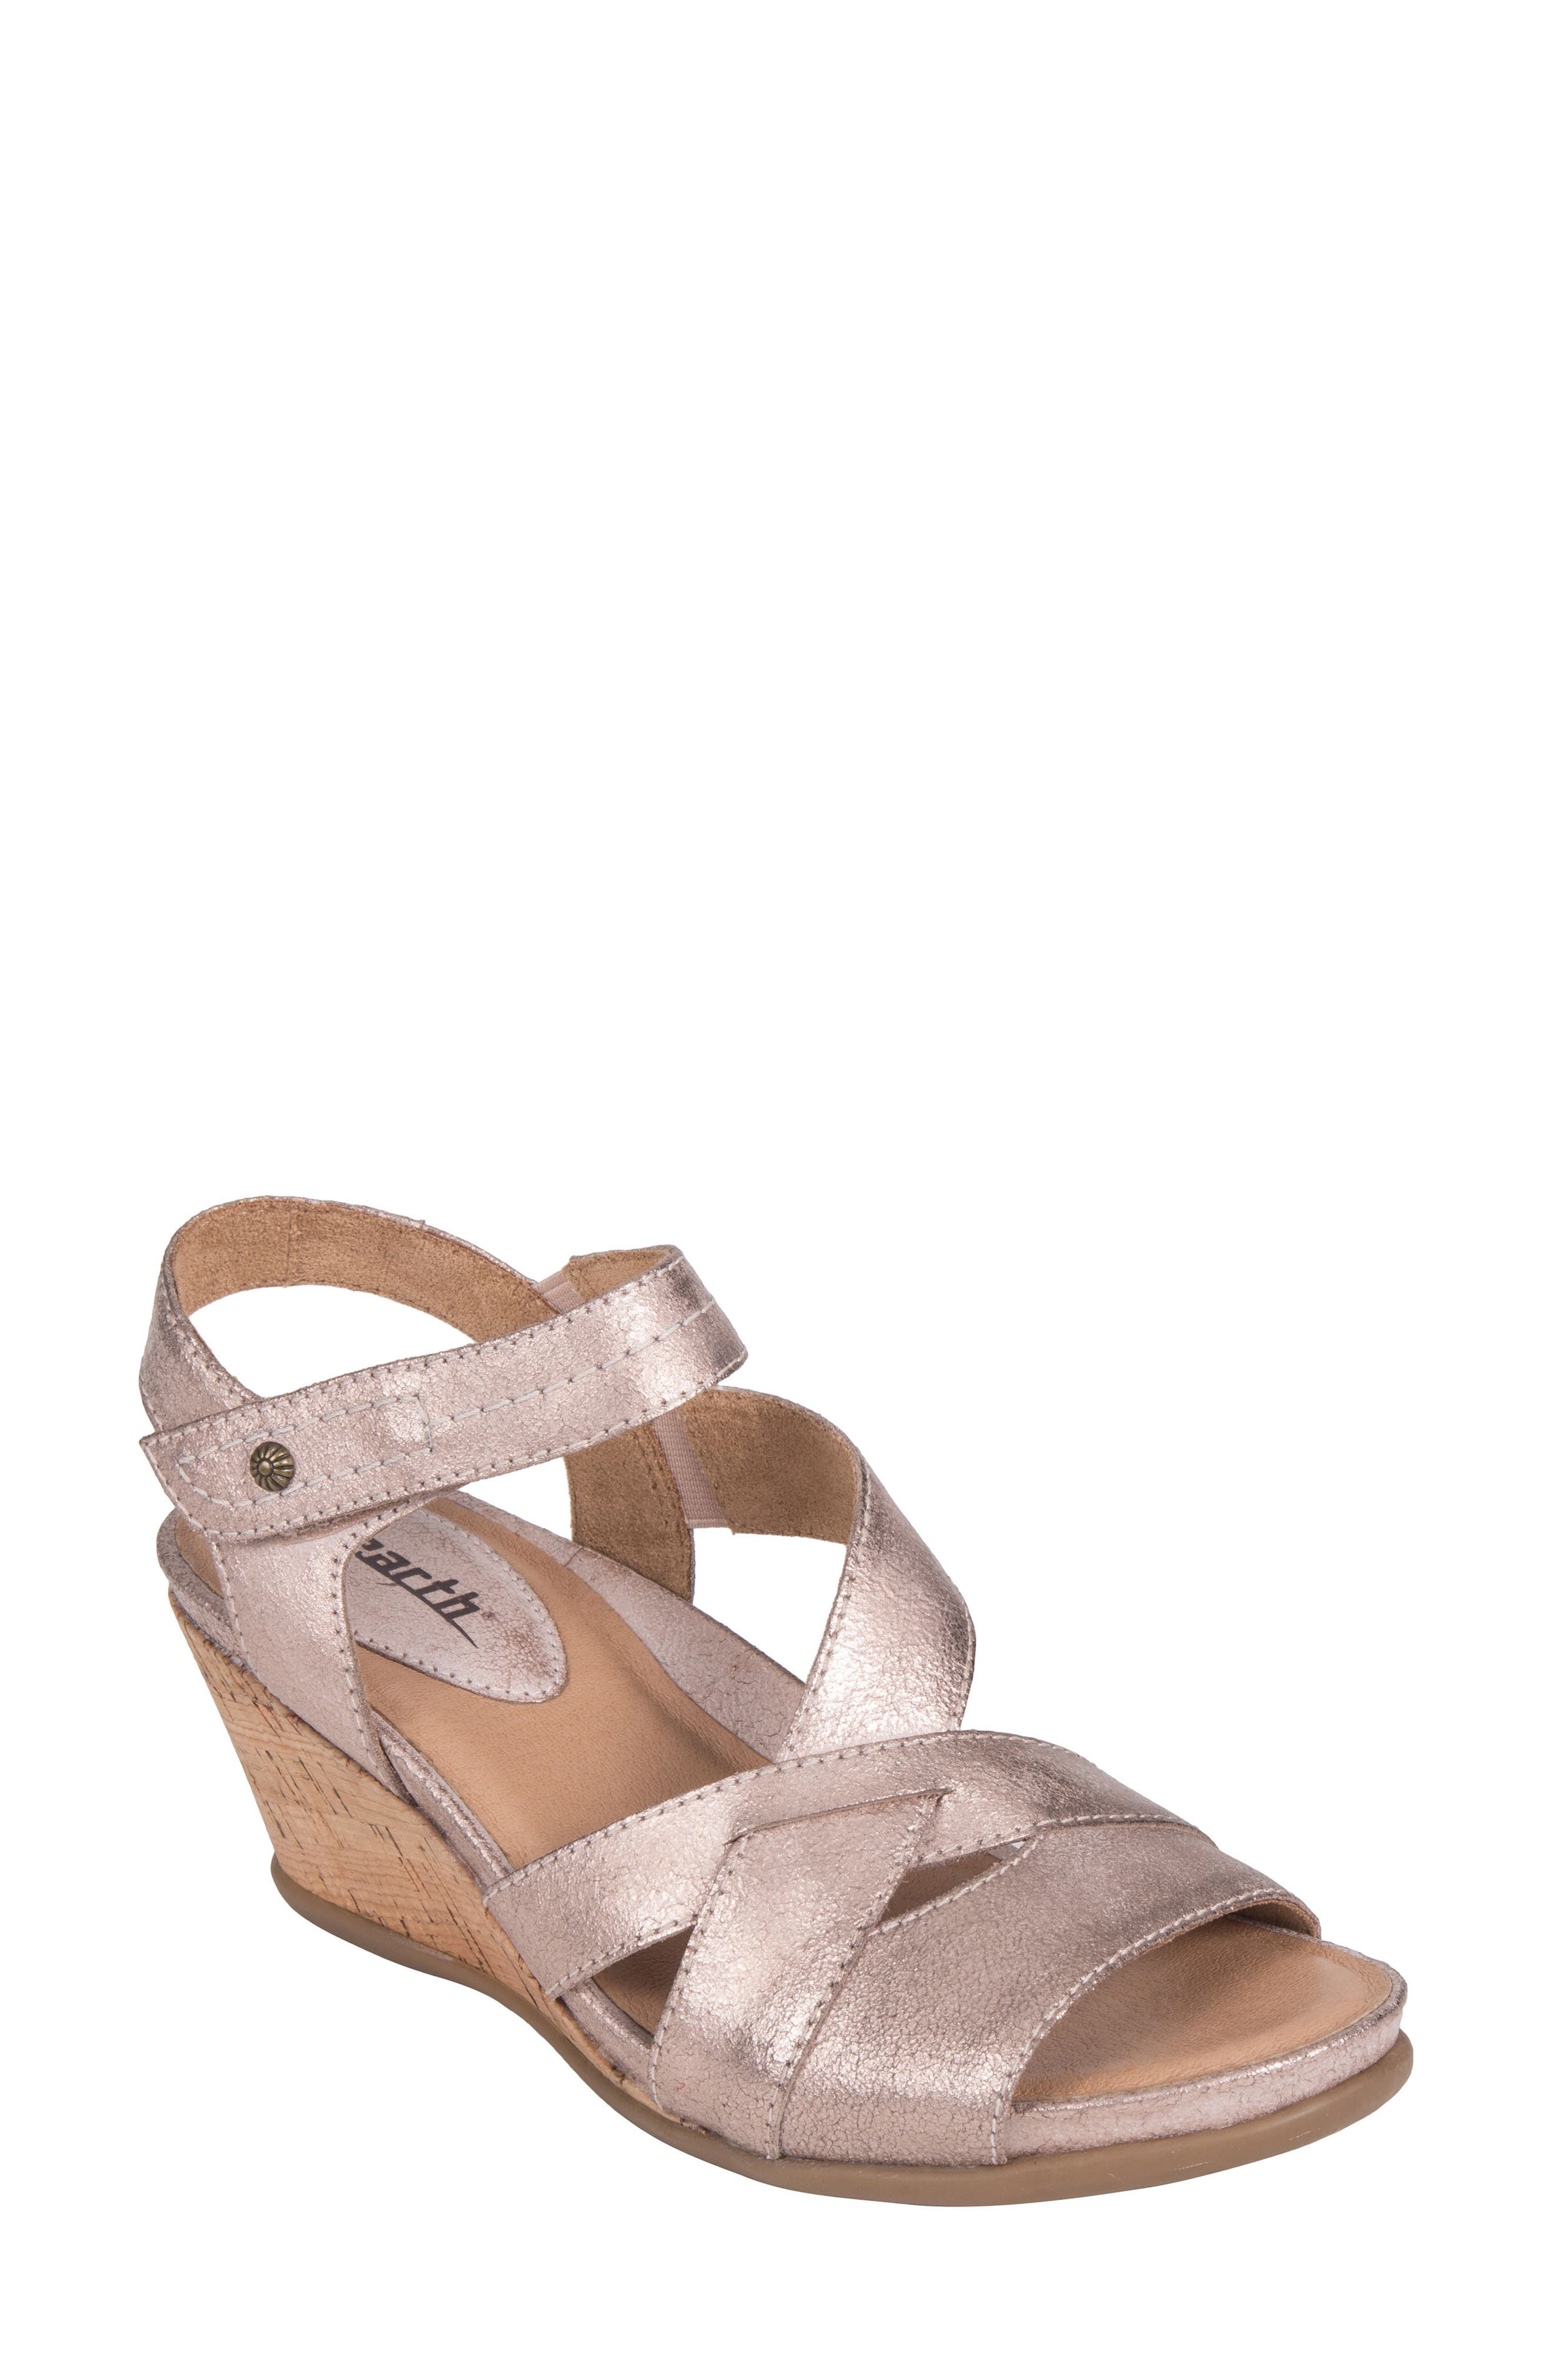 Thistle Wedge Sandal,                             Main thumbnail 1, color,                             Pink Leather